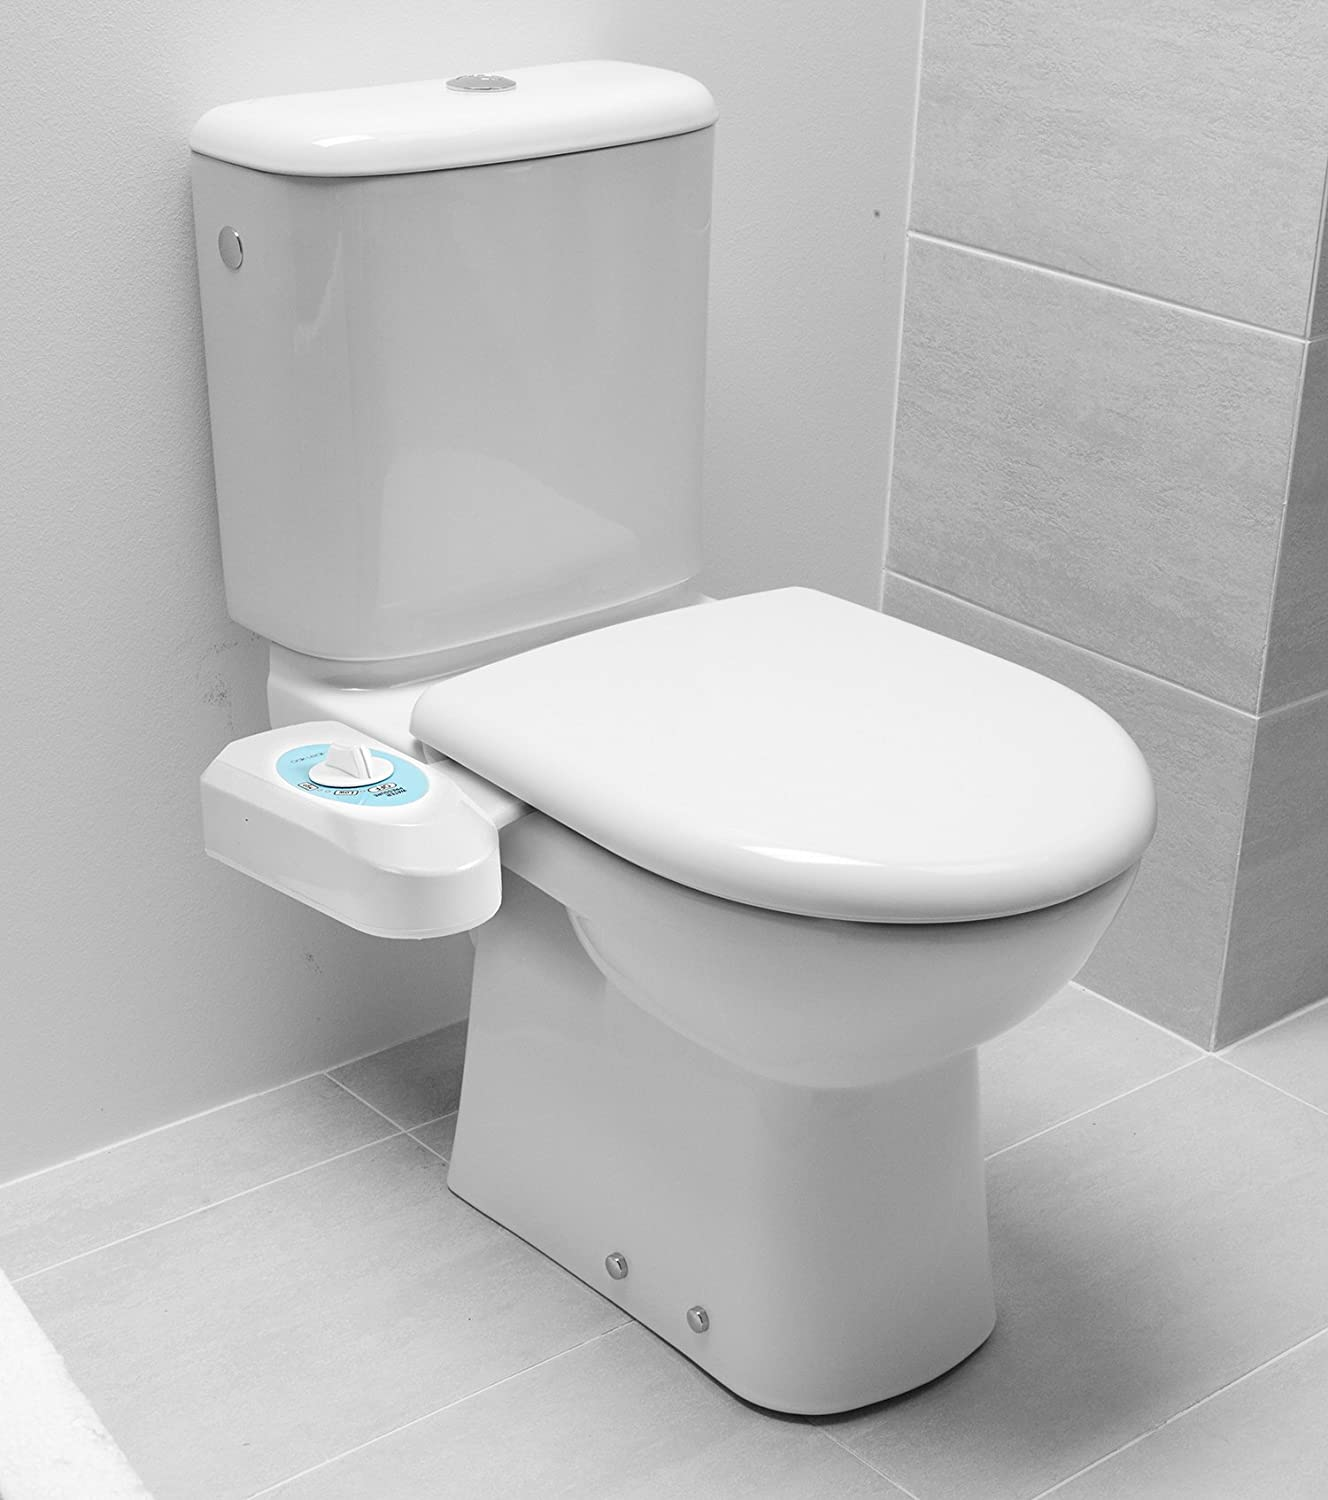 Bidet Toilet Attachment, Fresh Water Spray Non-electric Mechanical Bidet Toilet Seat Attachment - - Amazon.com